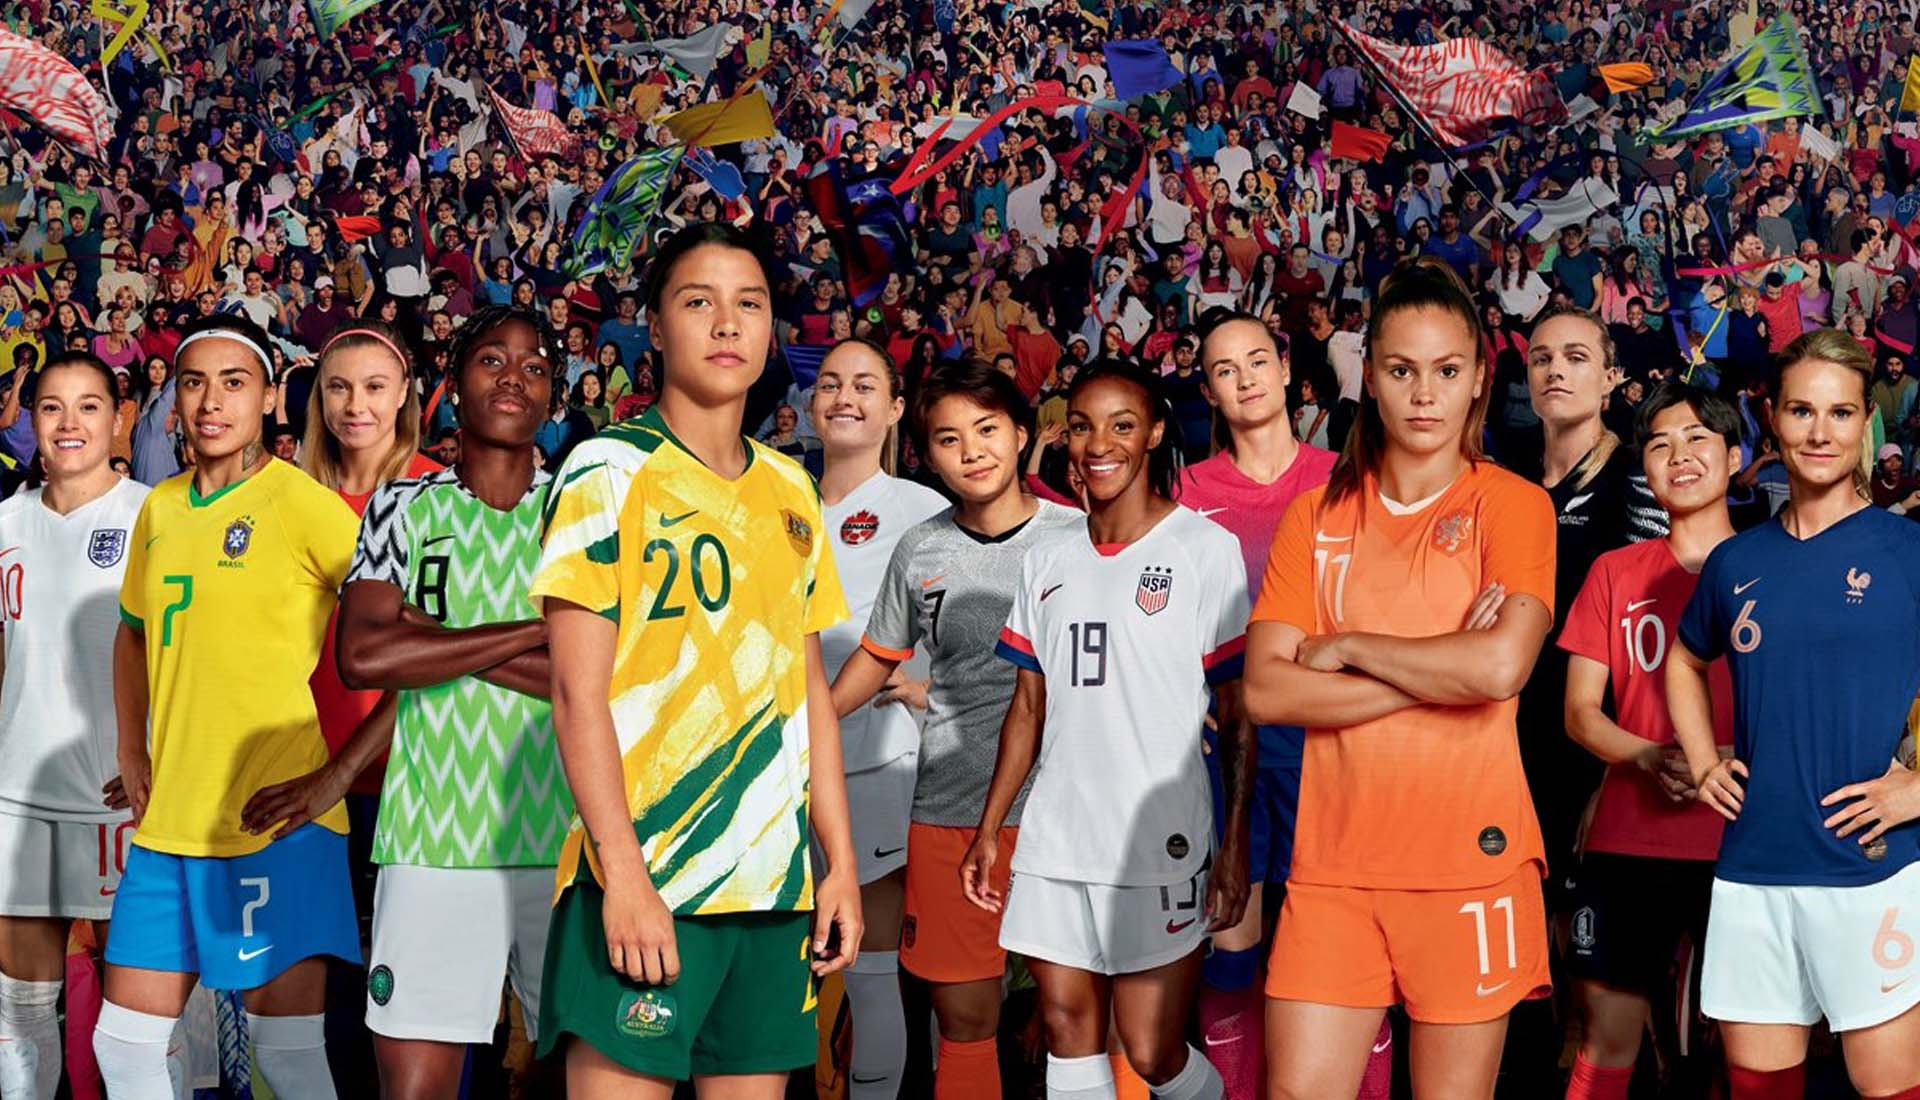 ala Admirable Motear  How Nike Dominated The 2019 Women's World Cup - SoccerBible